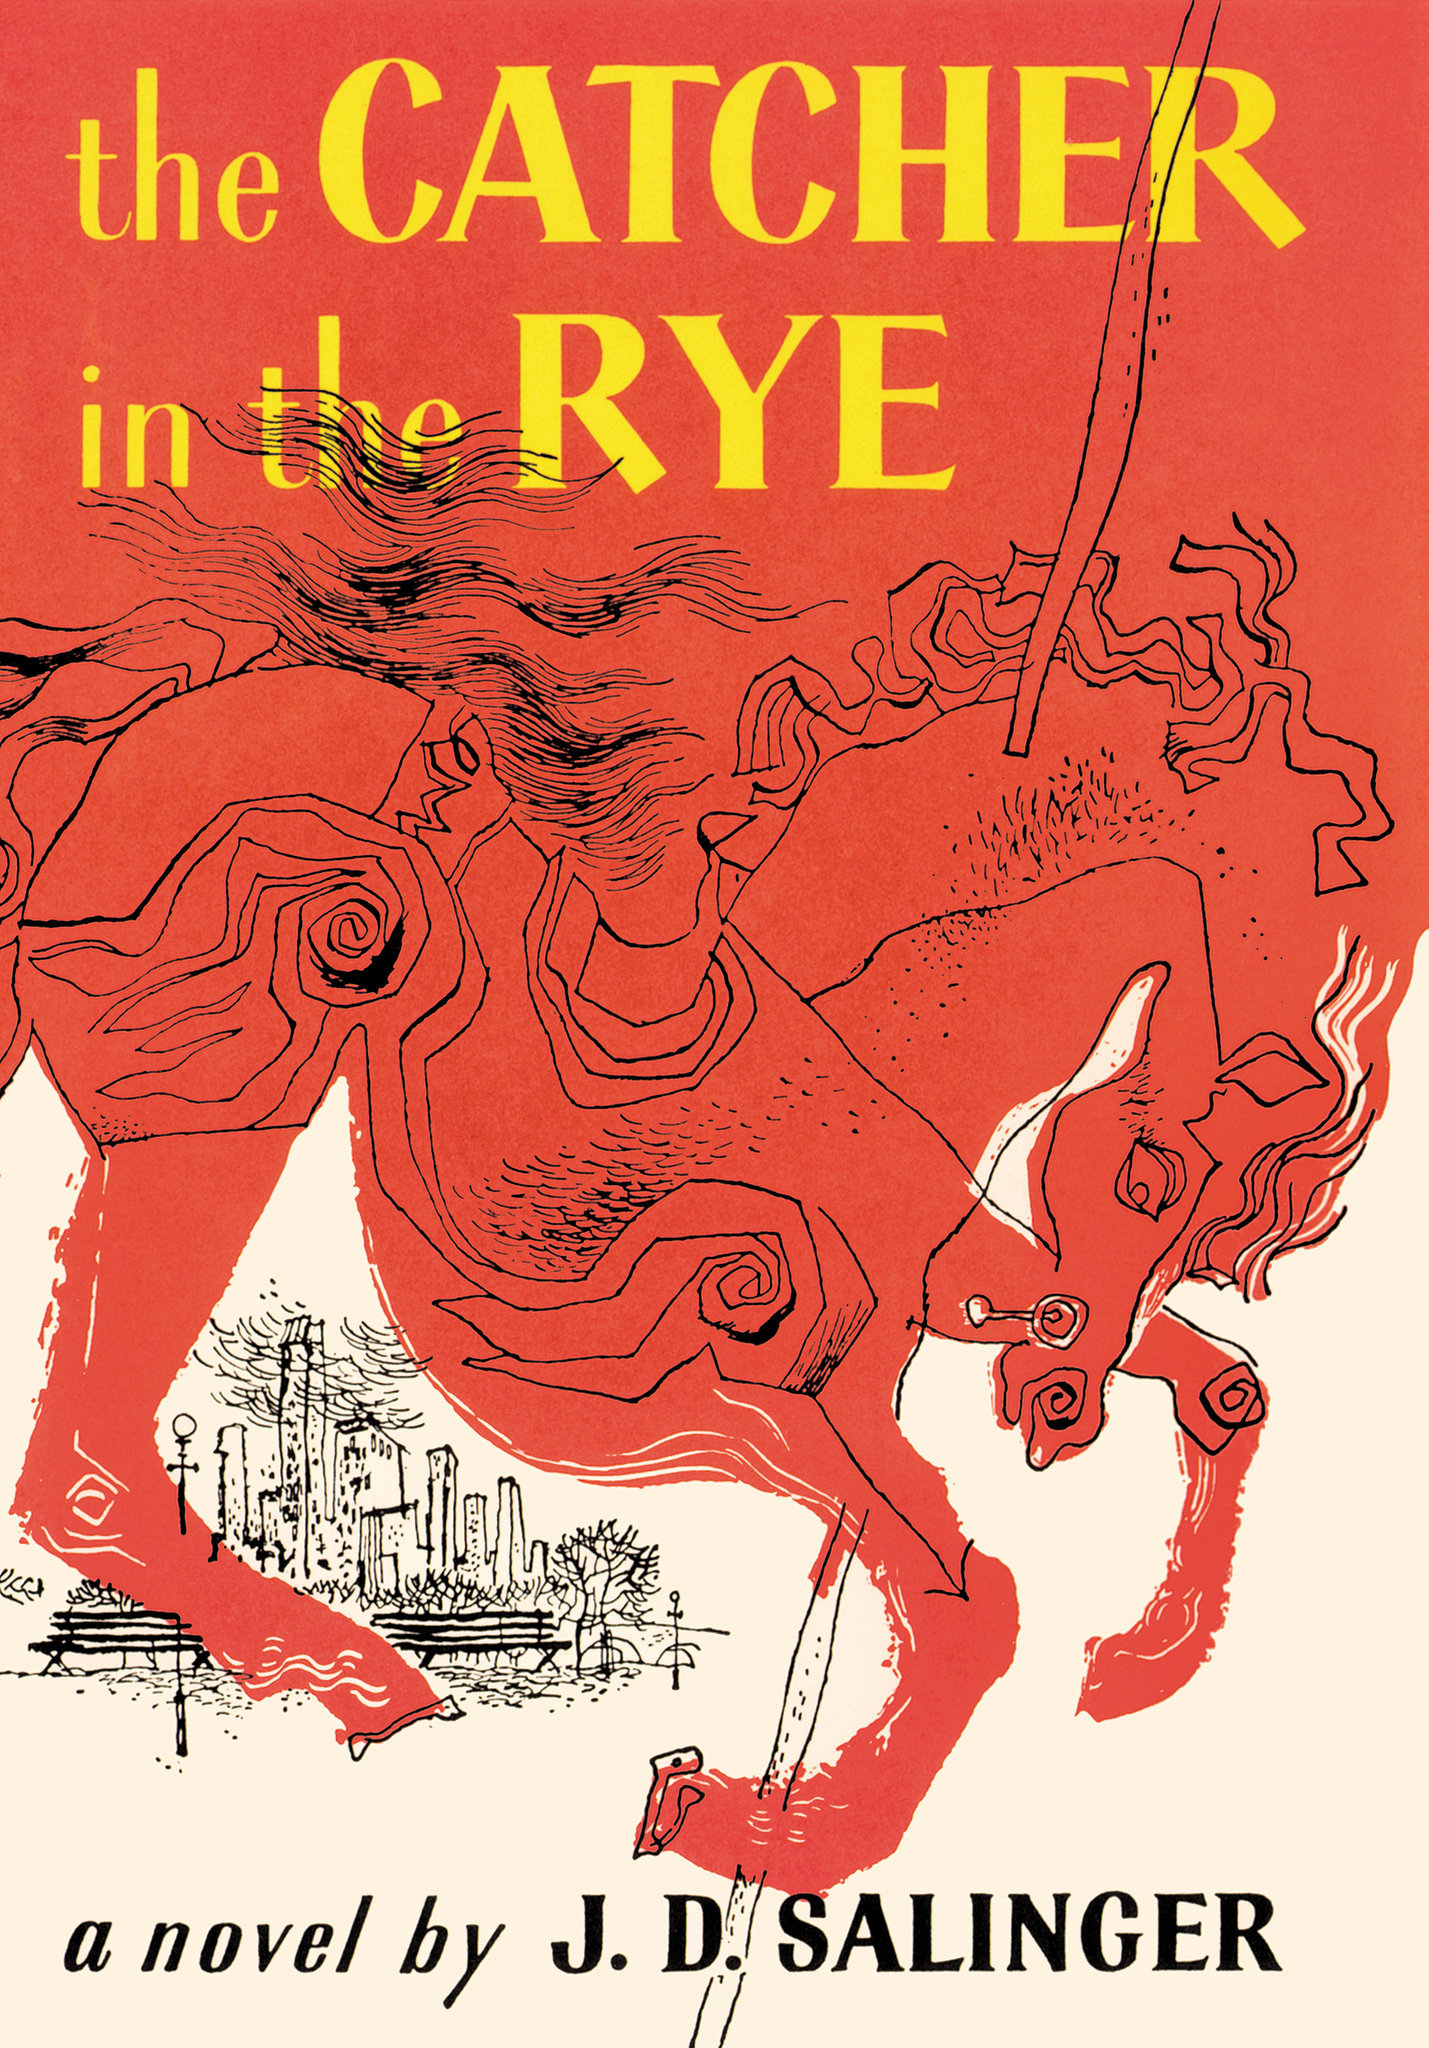 Catcher in the Rye: my thoughts.